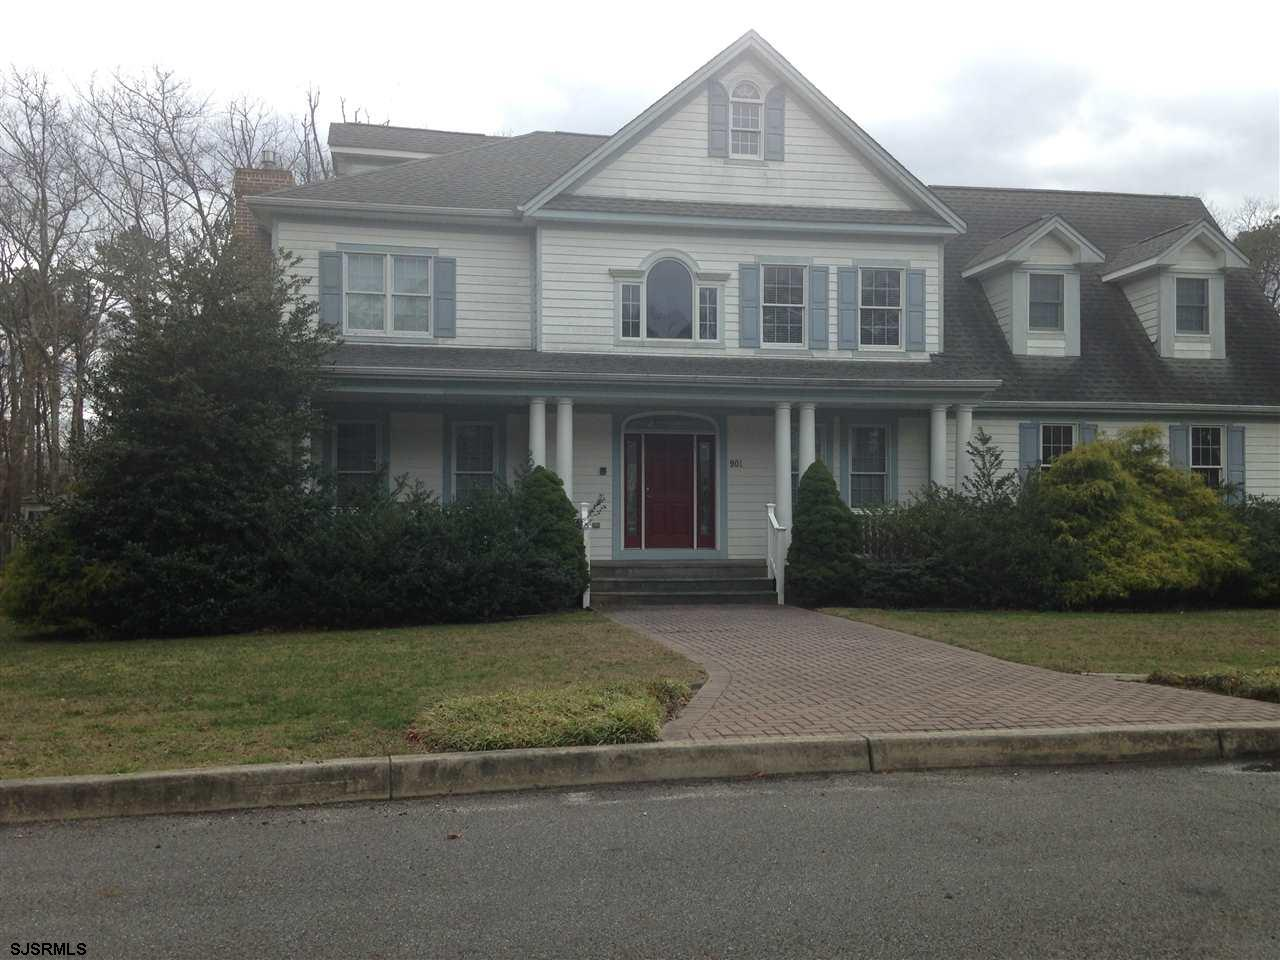 901 New York Ave, Absecon, NJ 08221